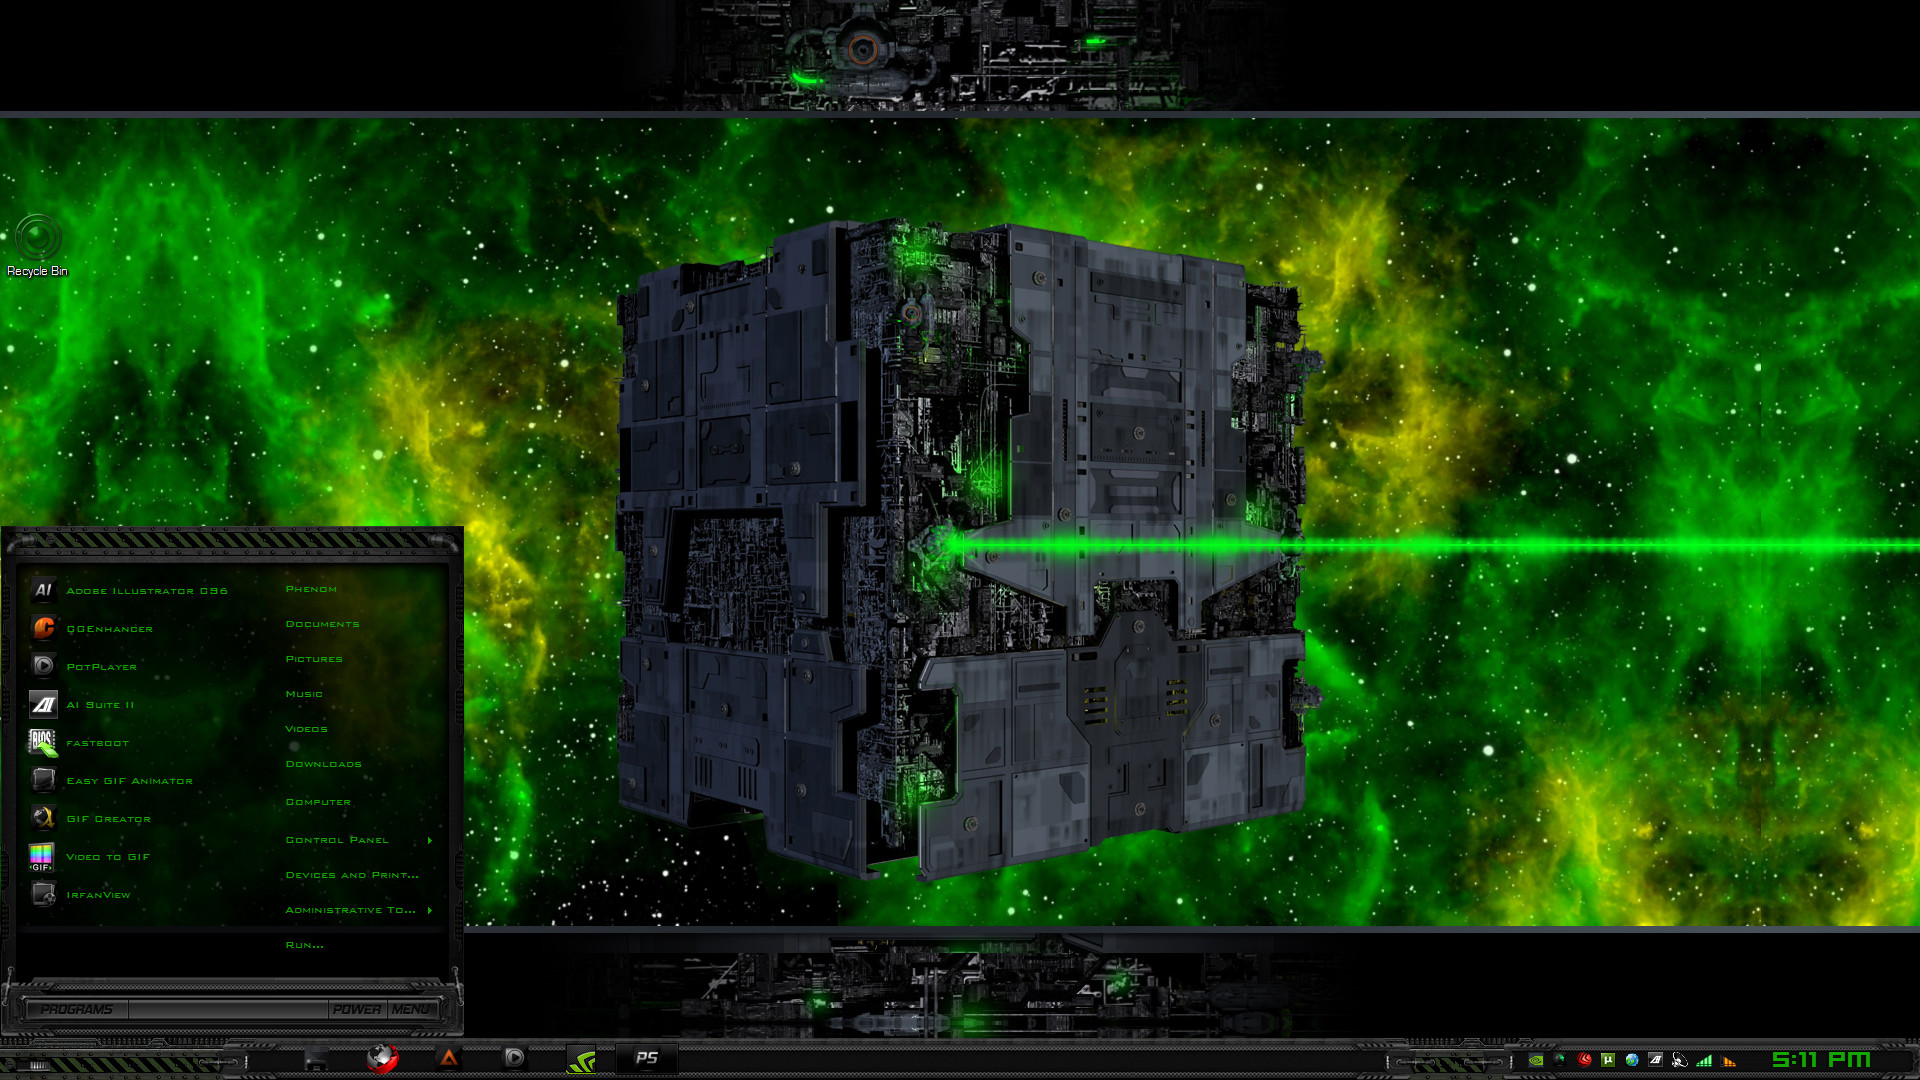 To all VC members you will now be assimilated into the Borg Collective. As  promised to round out the Star Trek themes here comes the Borg Resistance  is …